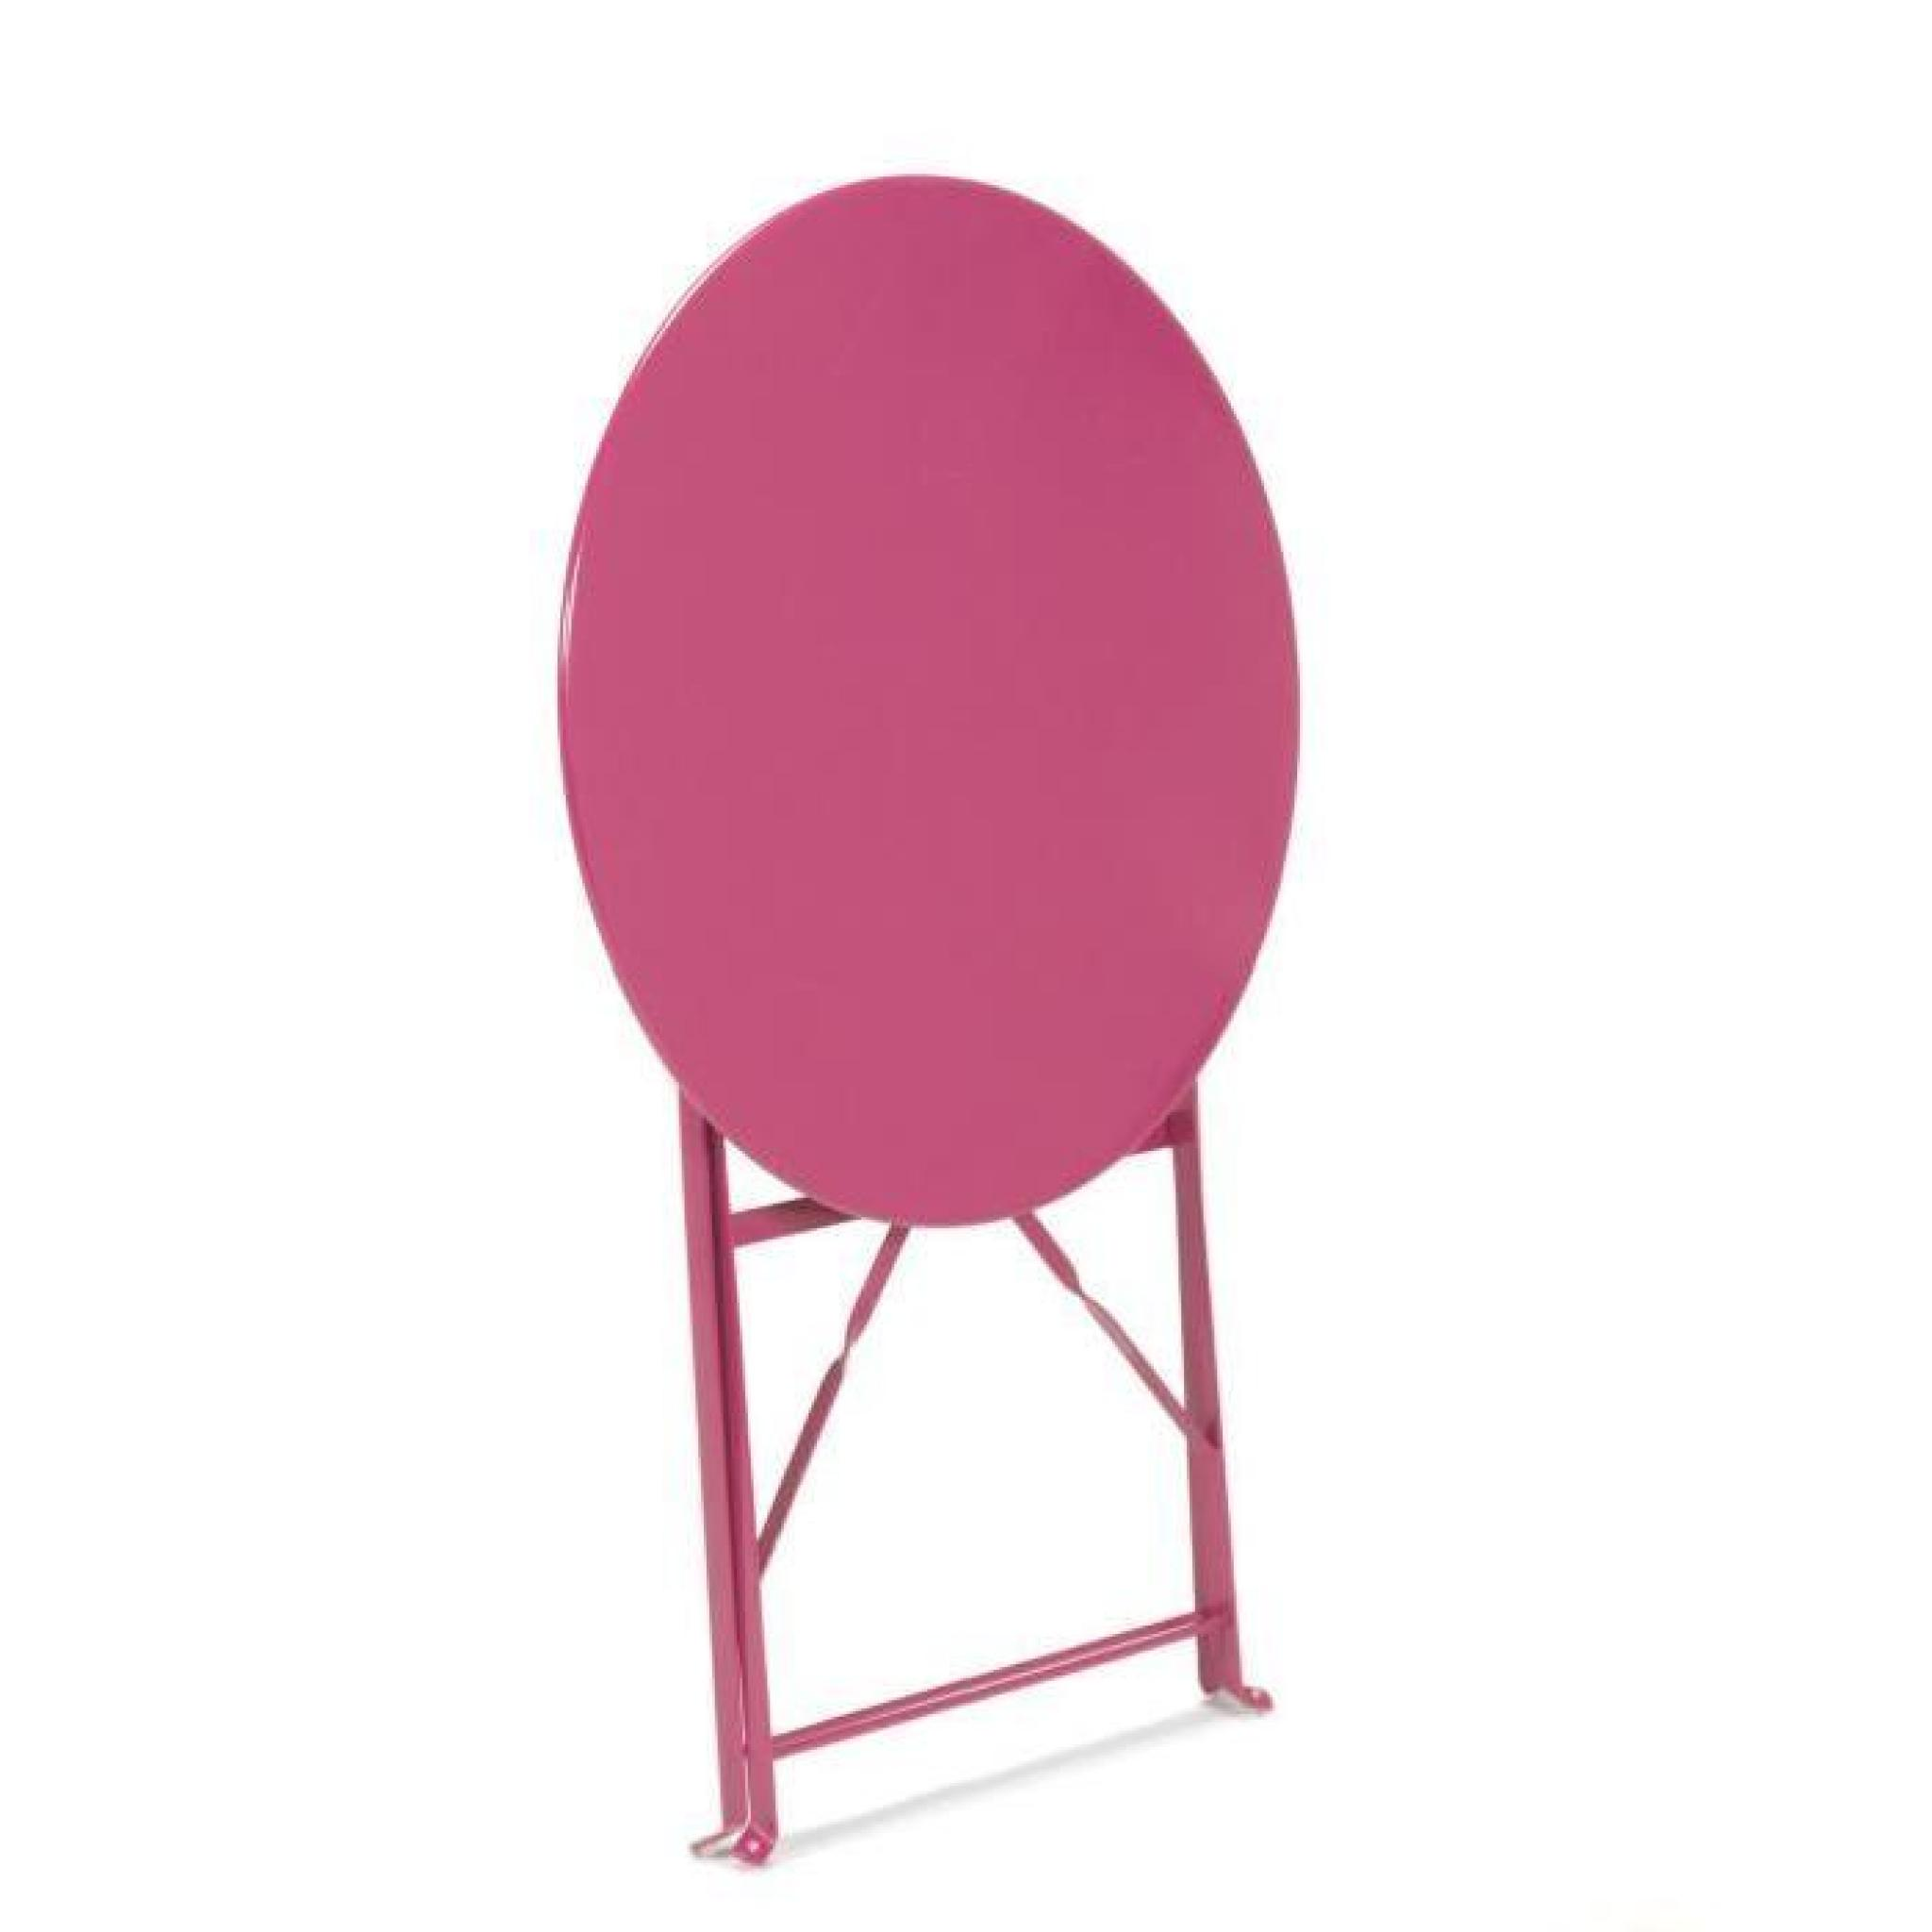 Pims Table de jardin ronde pliante - Rose